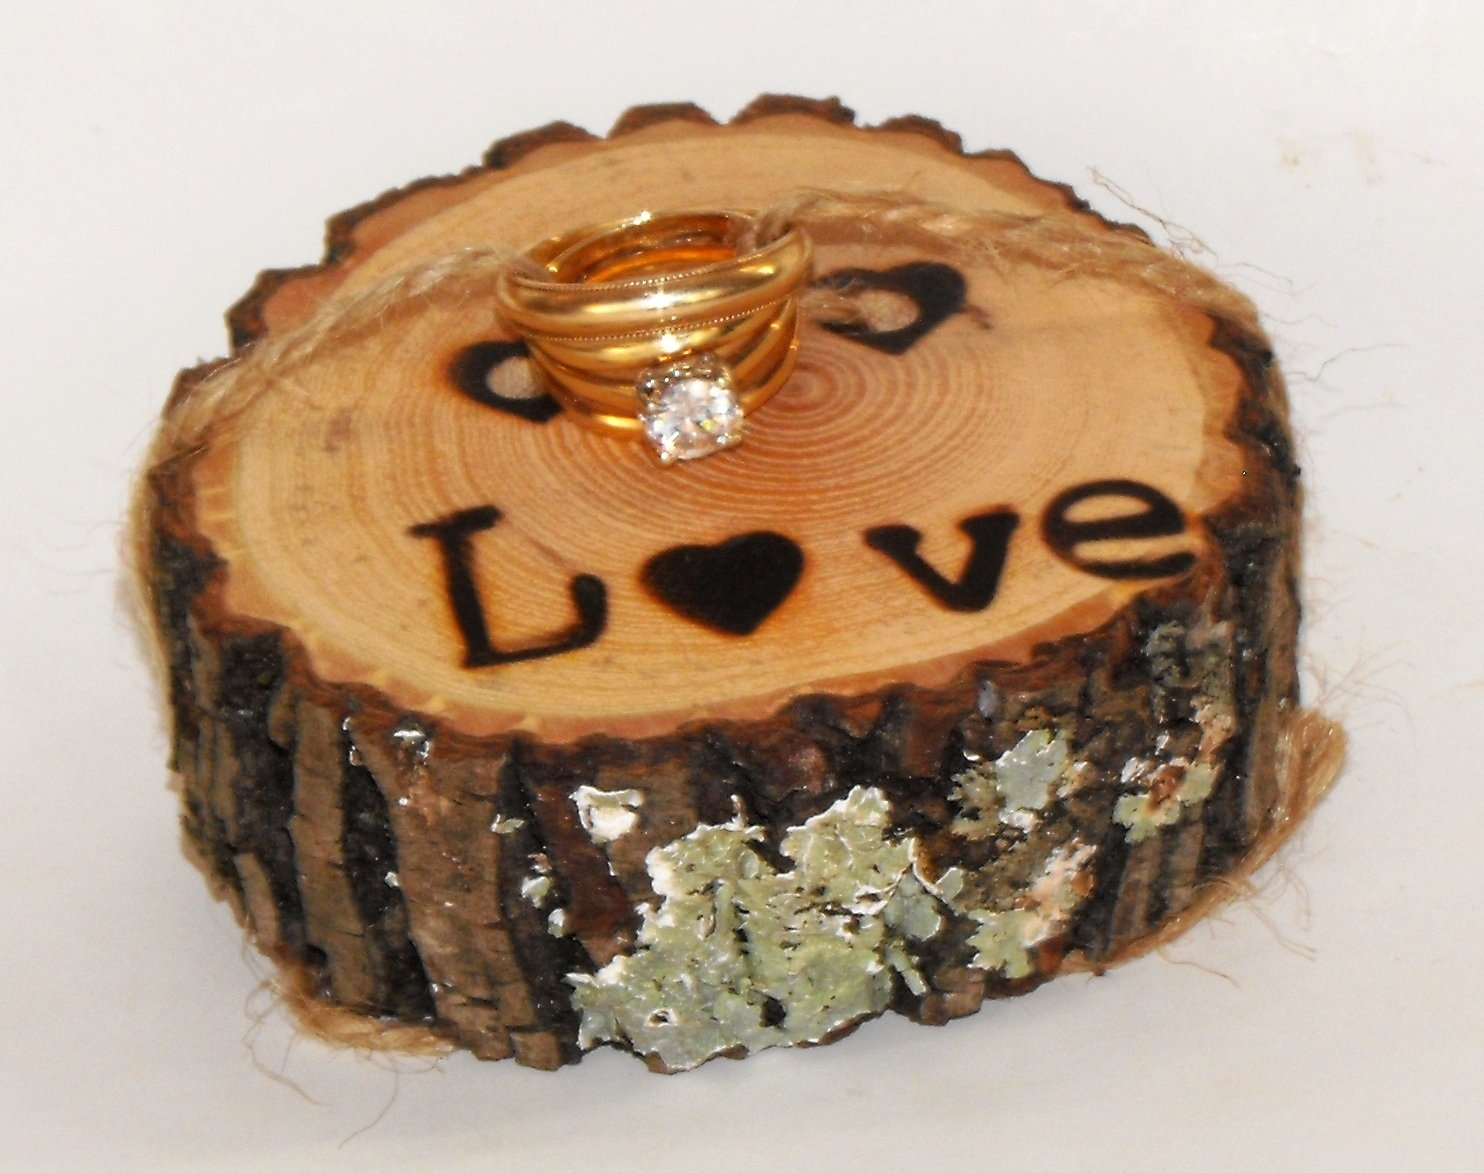 Wood slice Ring Bearer lower case Love burned Wedding Wood Ring Pillow Rustic Country Ring Engagement